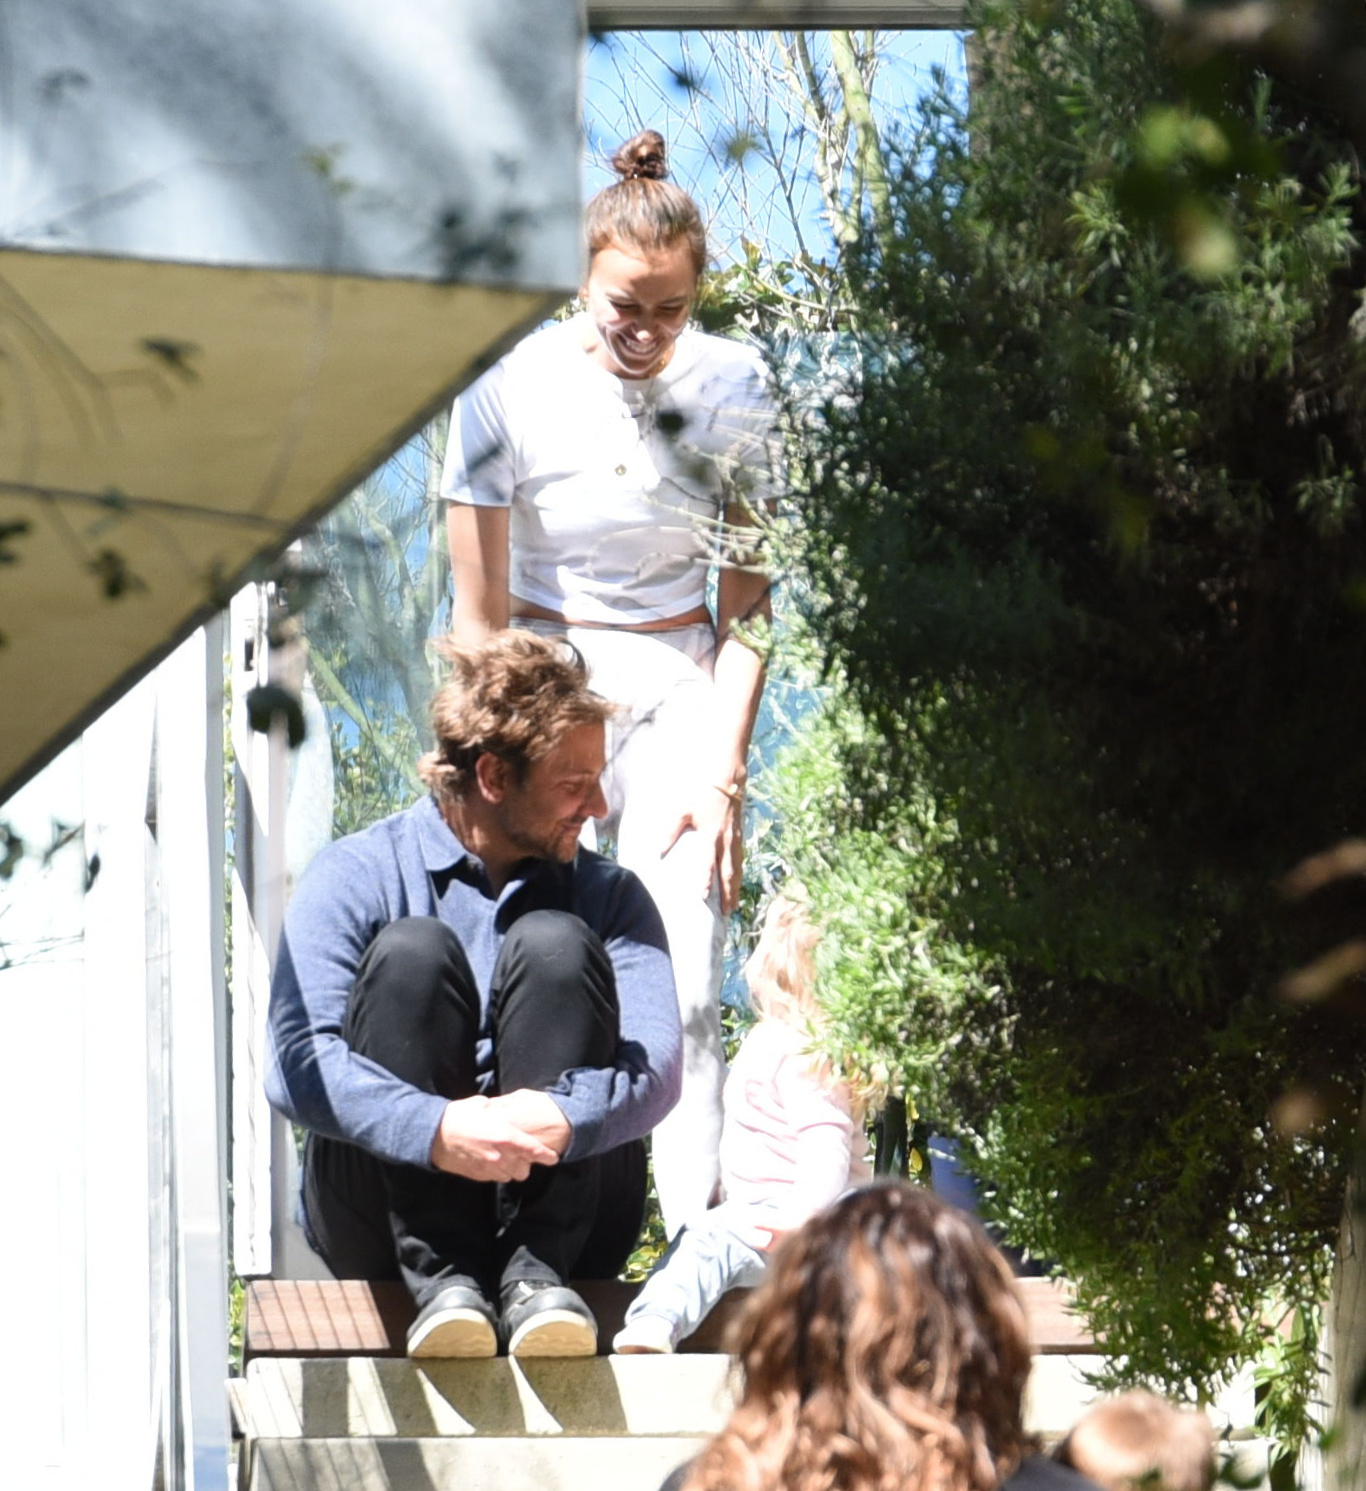 PREMIUM EXCLUSIVE Please contact X17 before any use of these exclusive photos - x17@x17agency.com   So long for the gossips! Bradley Cooper and Irina Shayk offer beautiful love portrait as they are sitting on stairs after Oscar controversy where Bradley was labelled